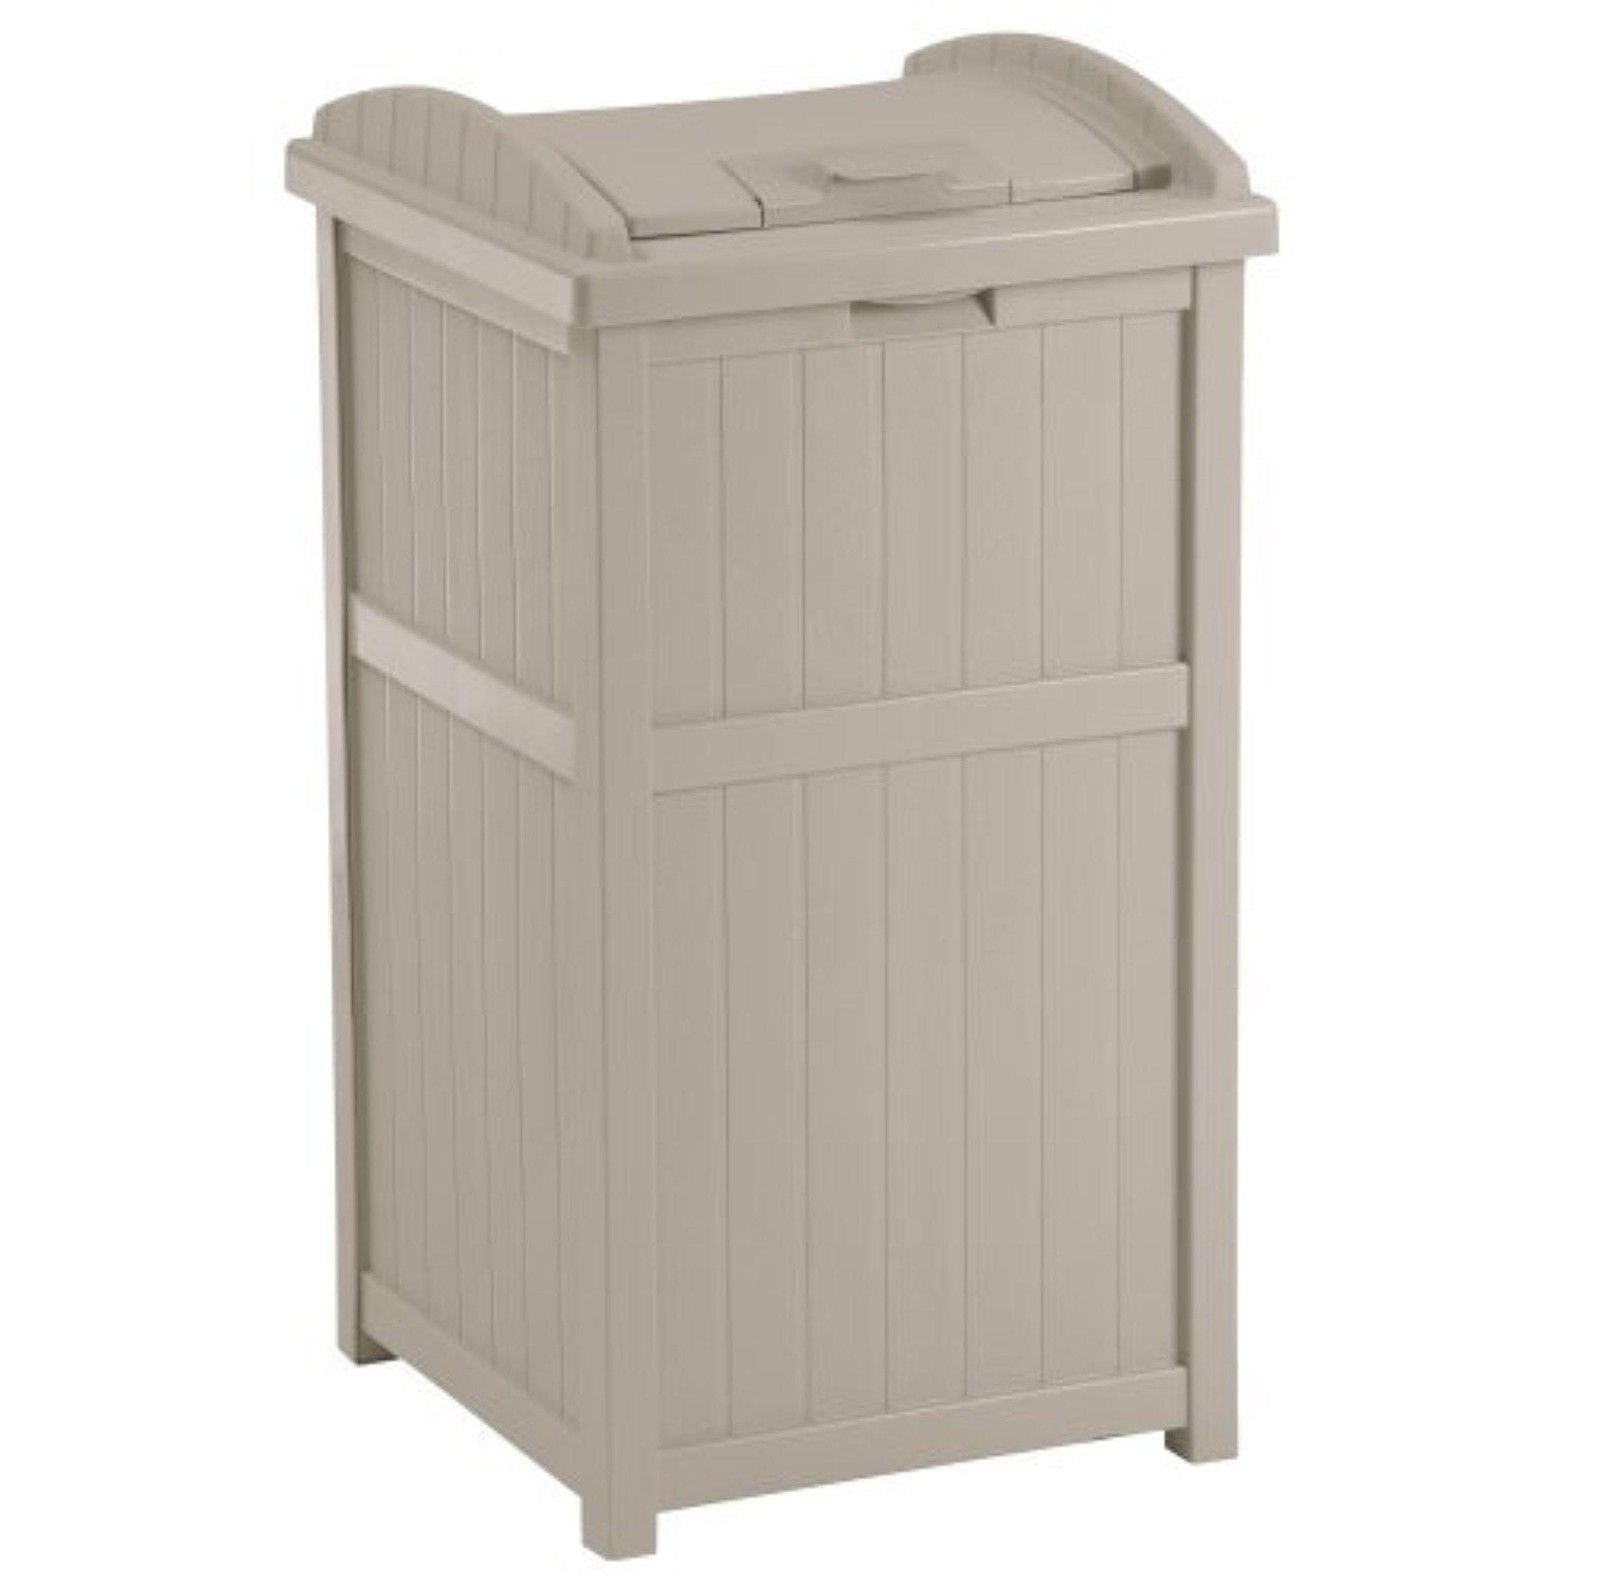 zwan 30-33 Gallon Deck Patio Resin Garbage Trash Can Hideaway, Taupe with Ebook